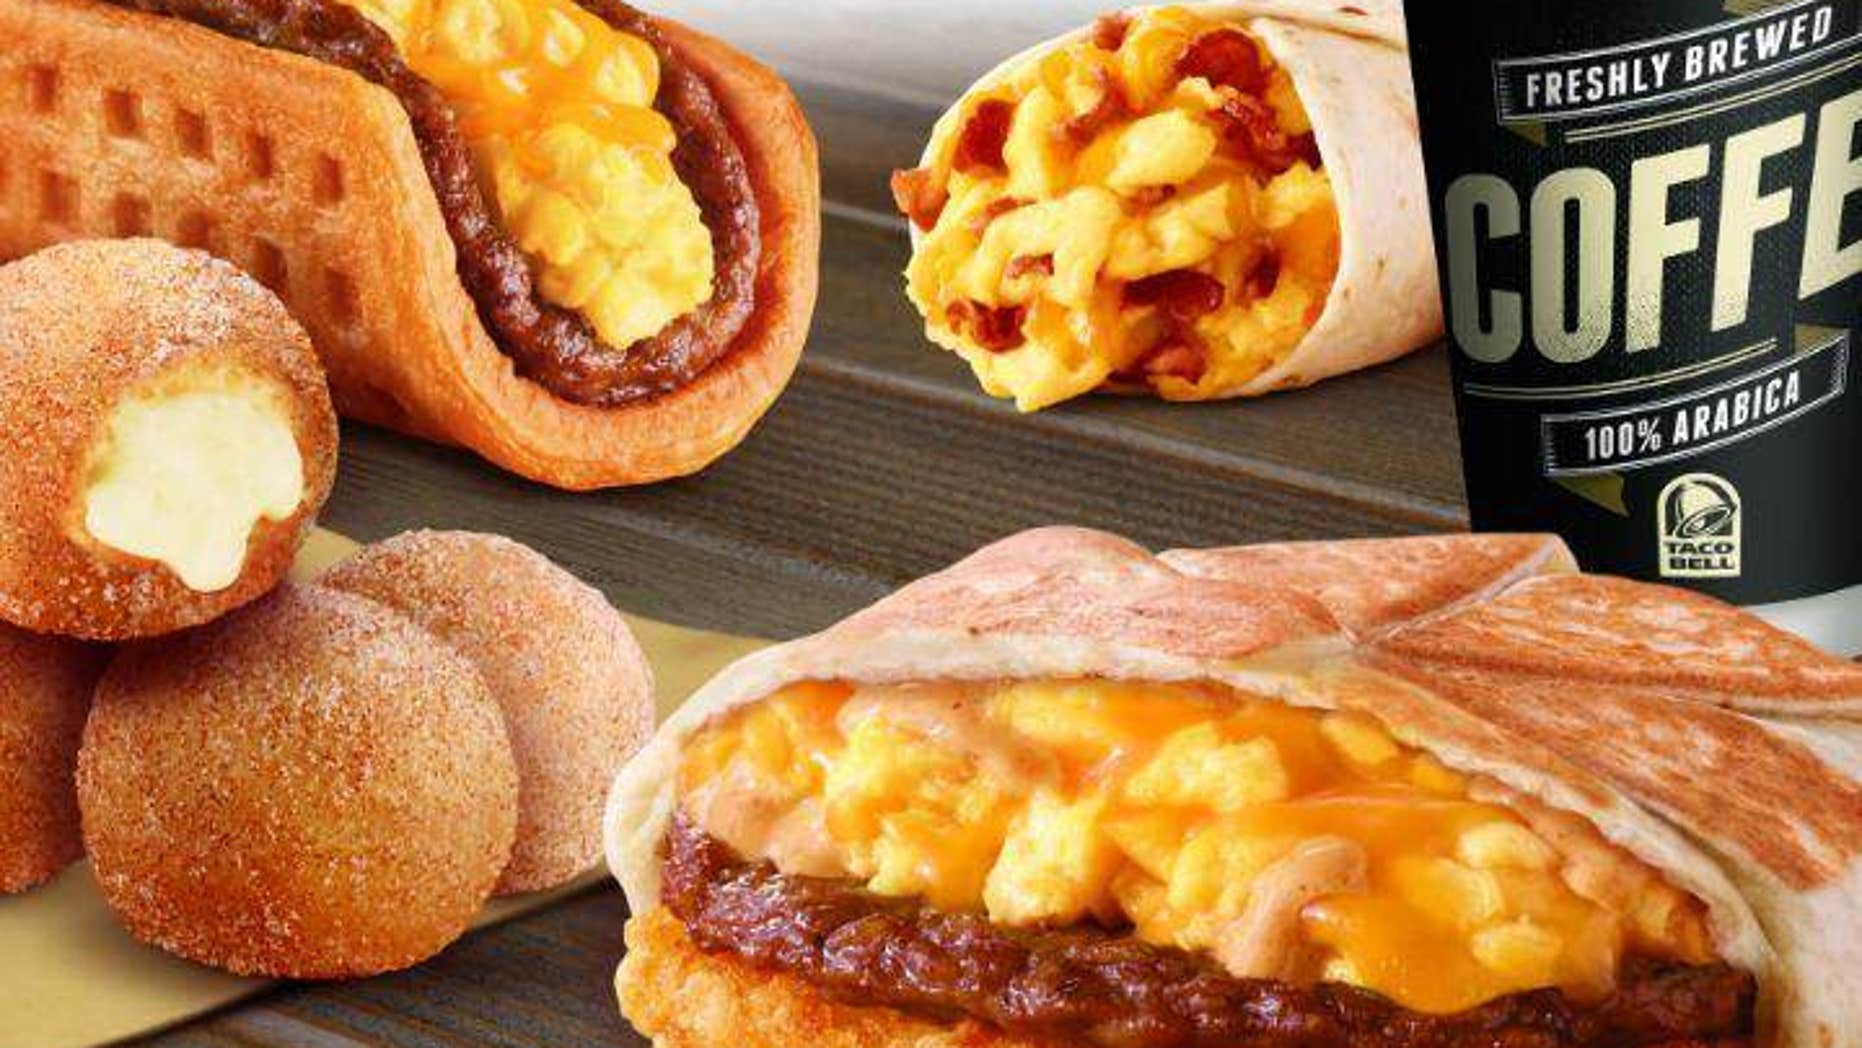 Taco Bell's signature breakfast items like the A.M. Crunchwrap will contain cage-free eggs by the end of next year.